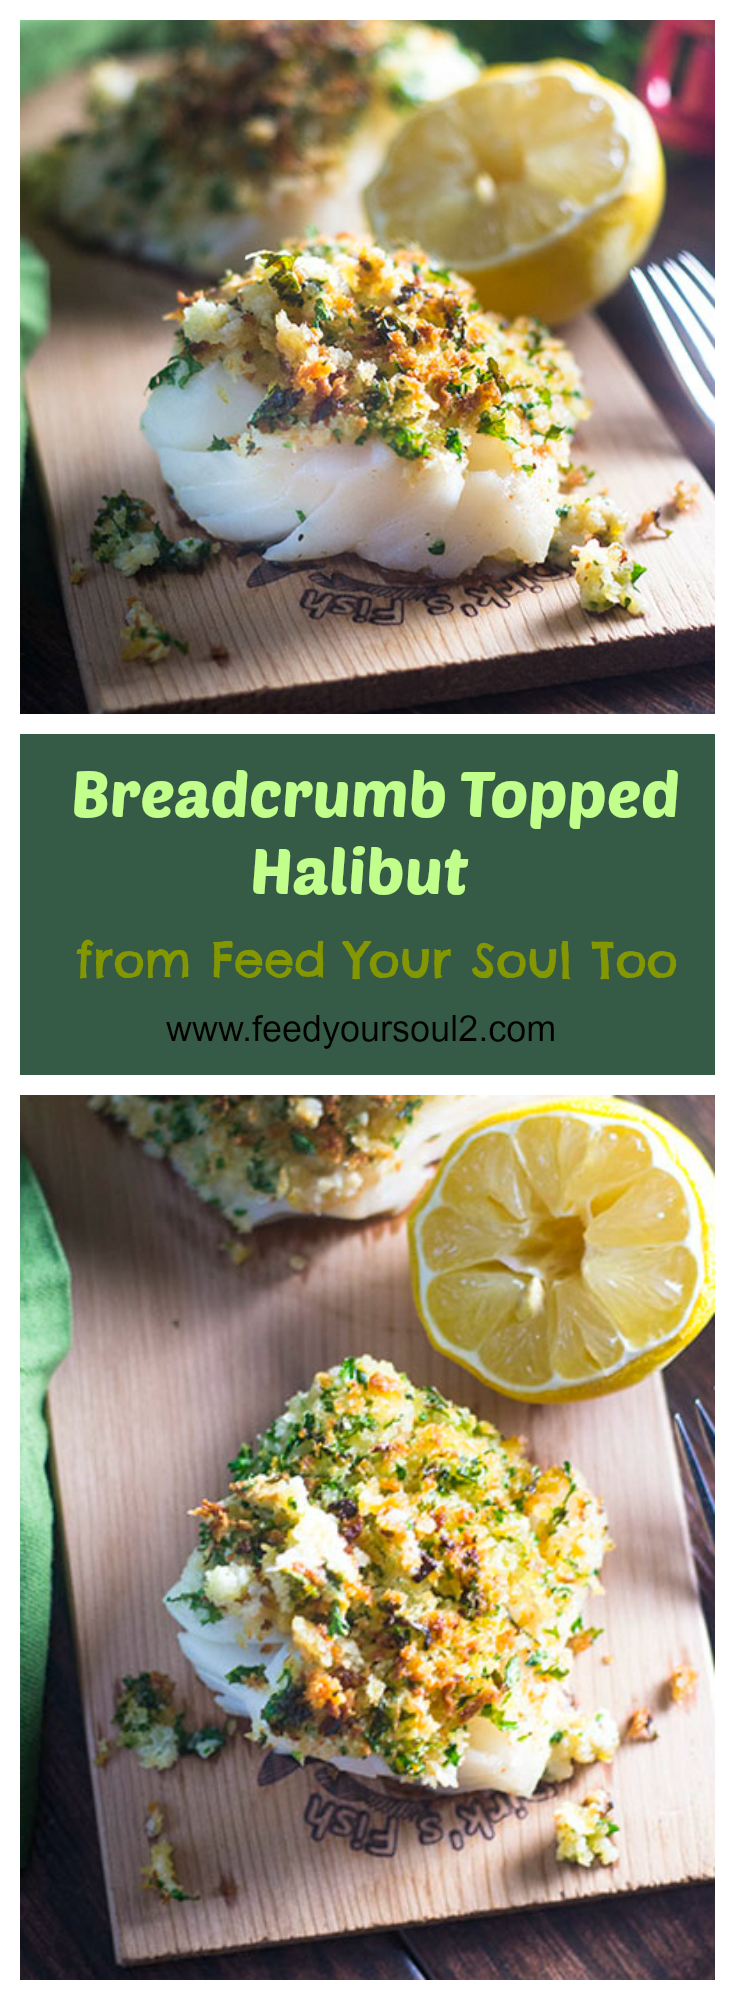 Breadcrumb Topped Halibut #seafood #breadcrumbs #ovenbaked   feedyoursoul2.com